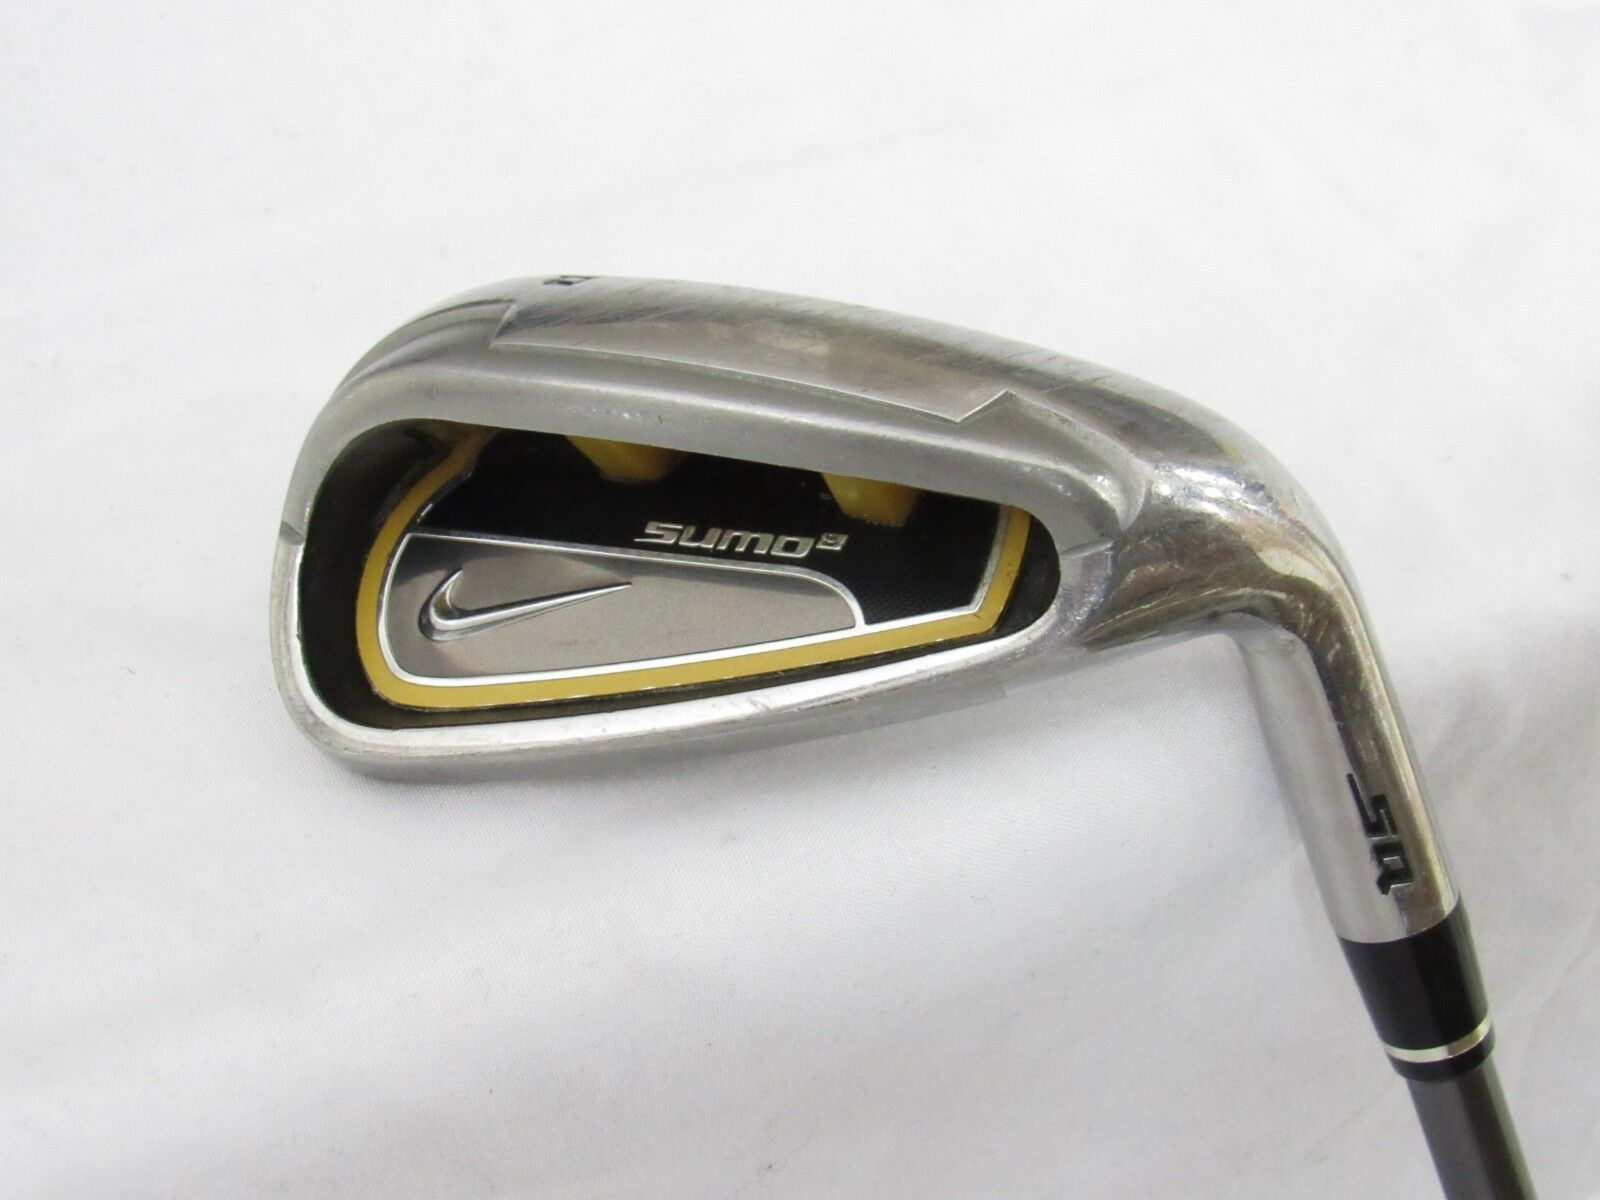 Nike Sq Sumo 2 Single PW lanzamiento Wedge-idiamana Damas Grafito Flex utilizado mano derecha